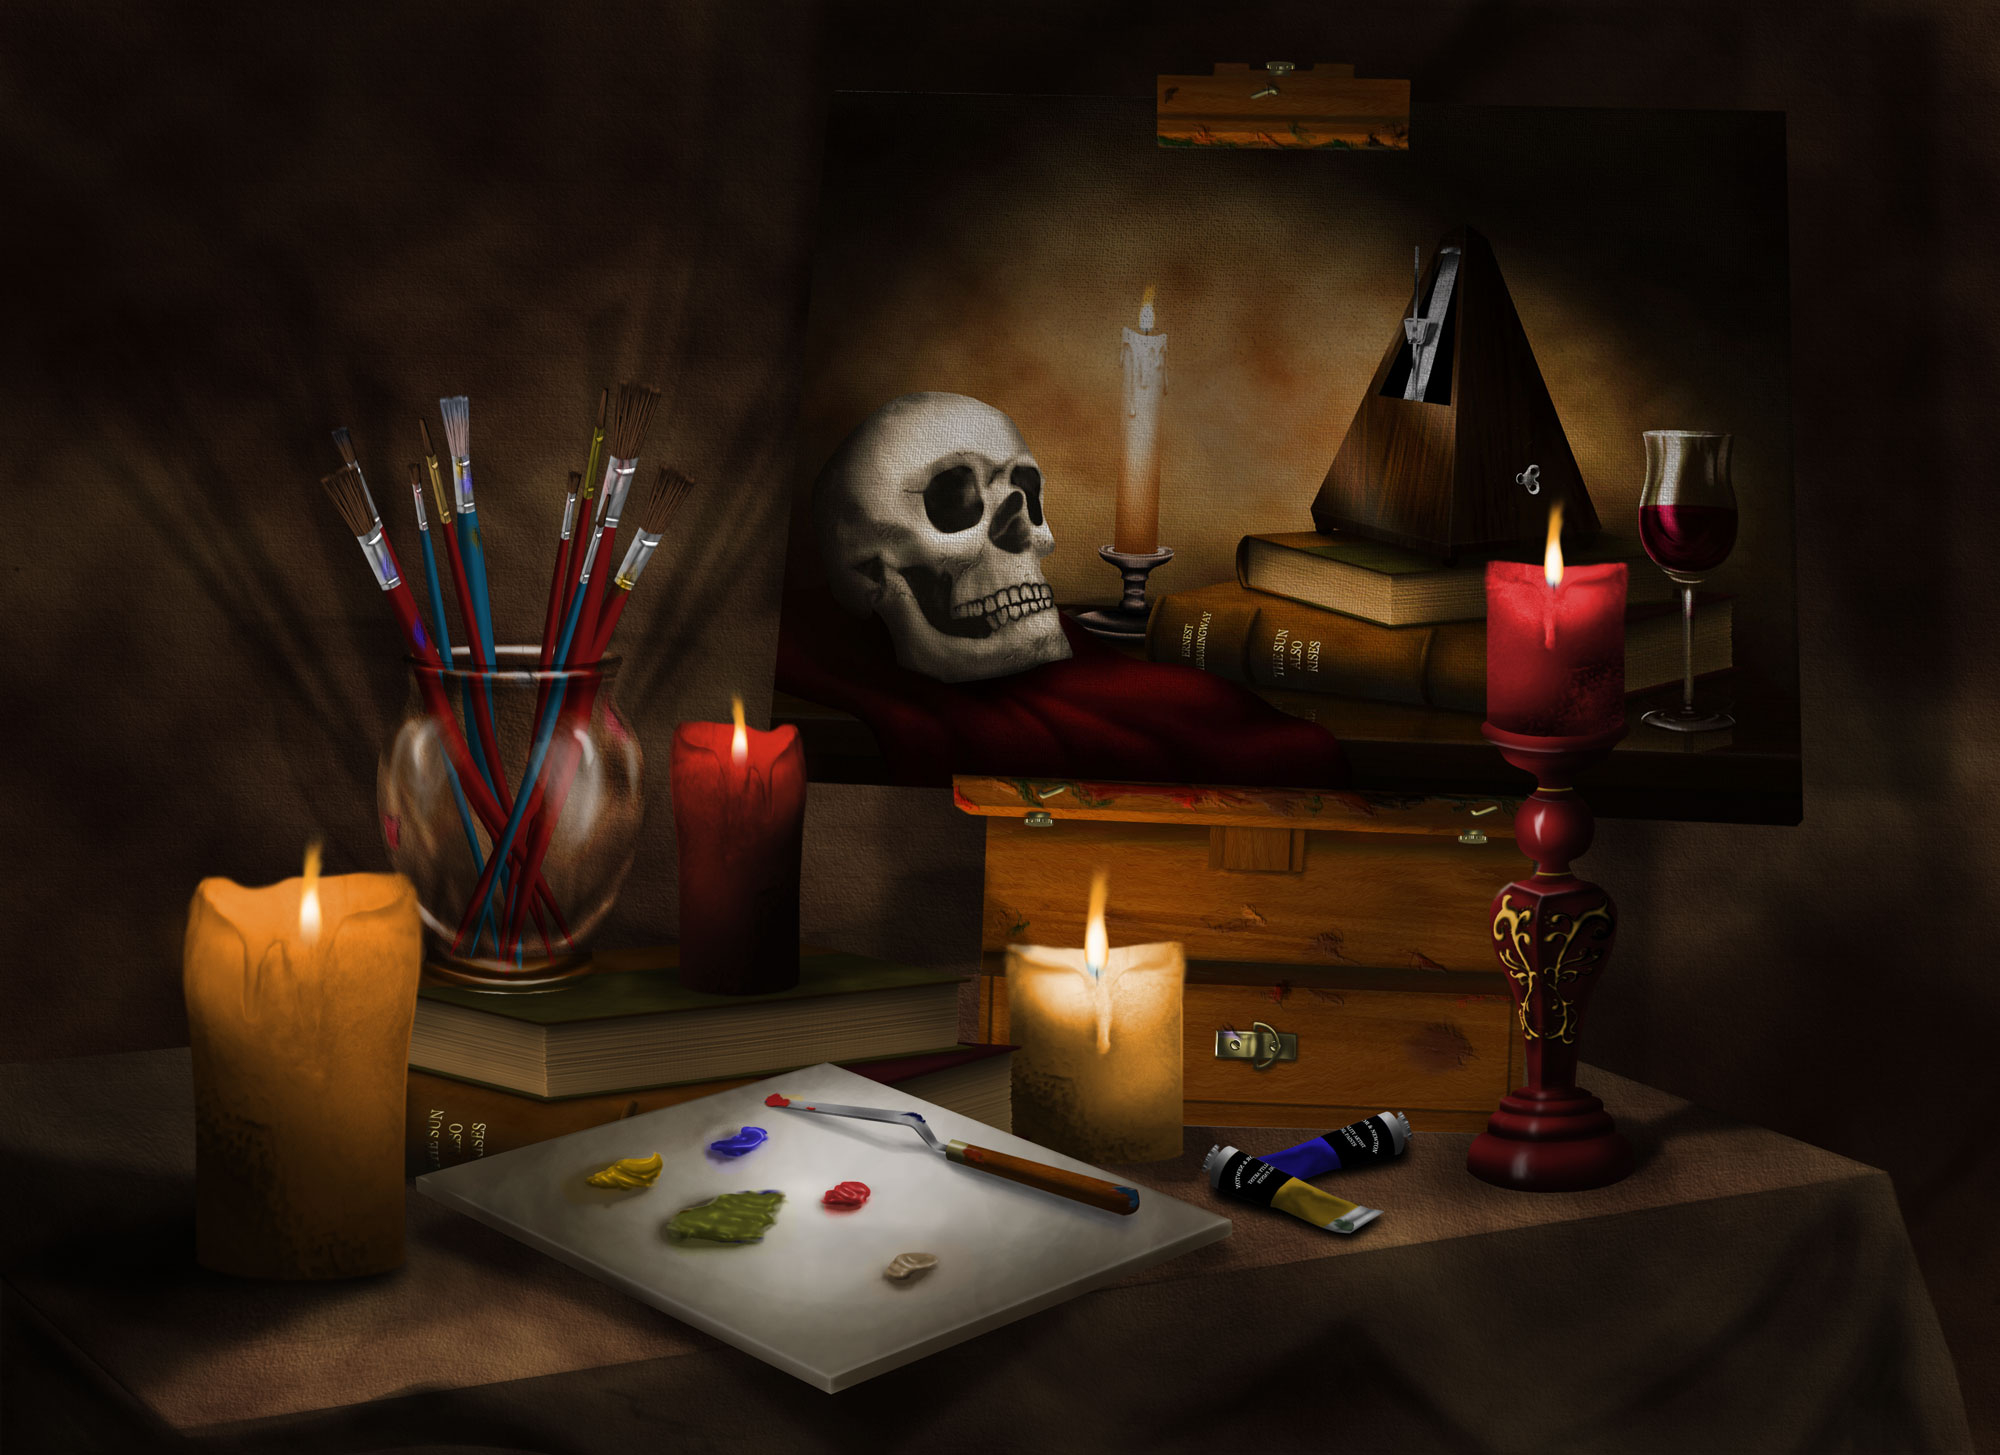 Artist-Still-Life-Digital Painting